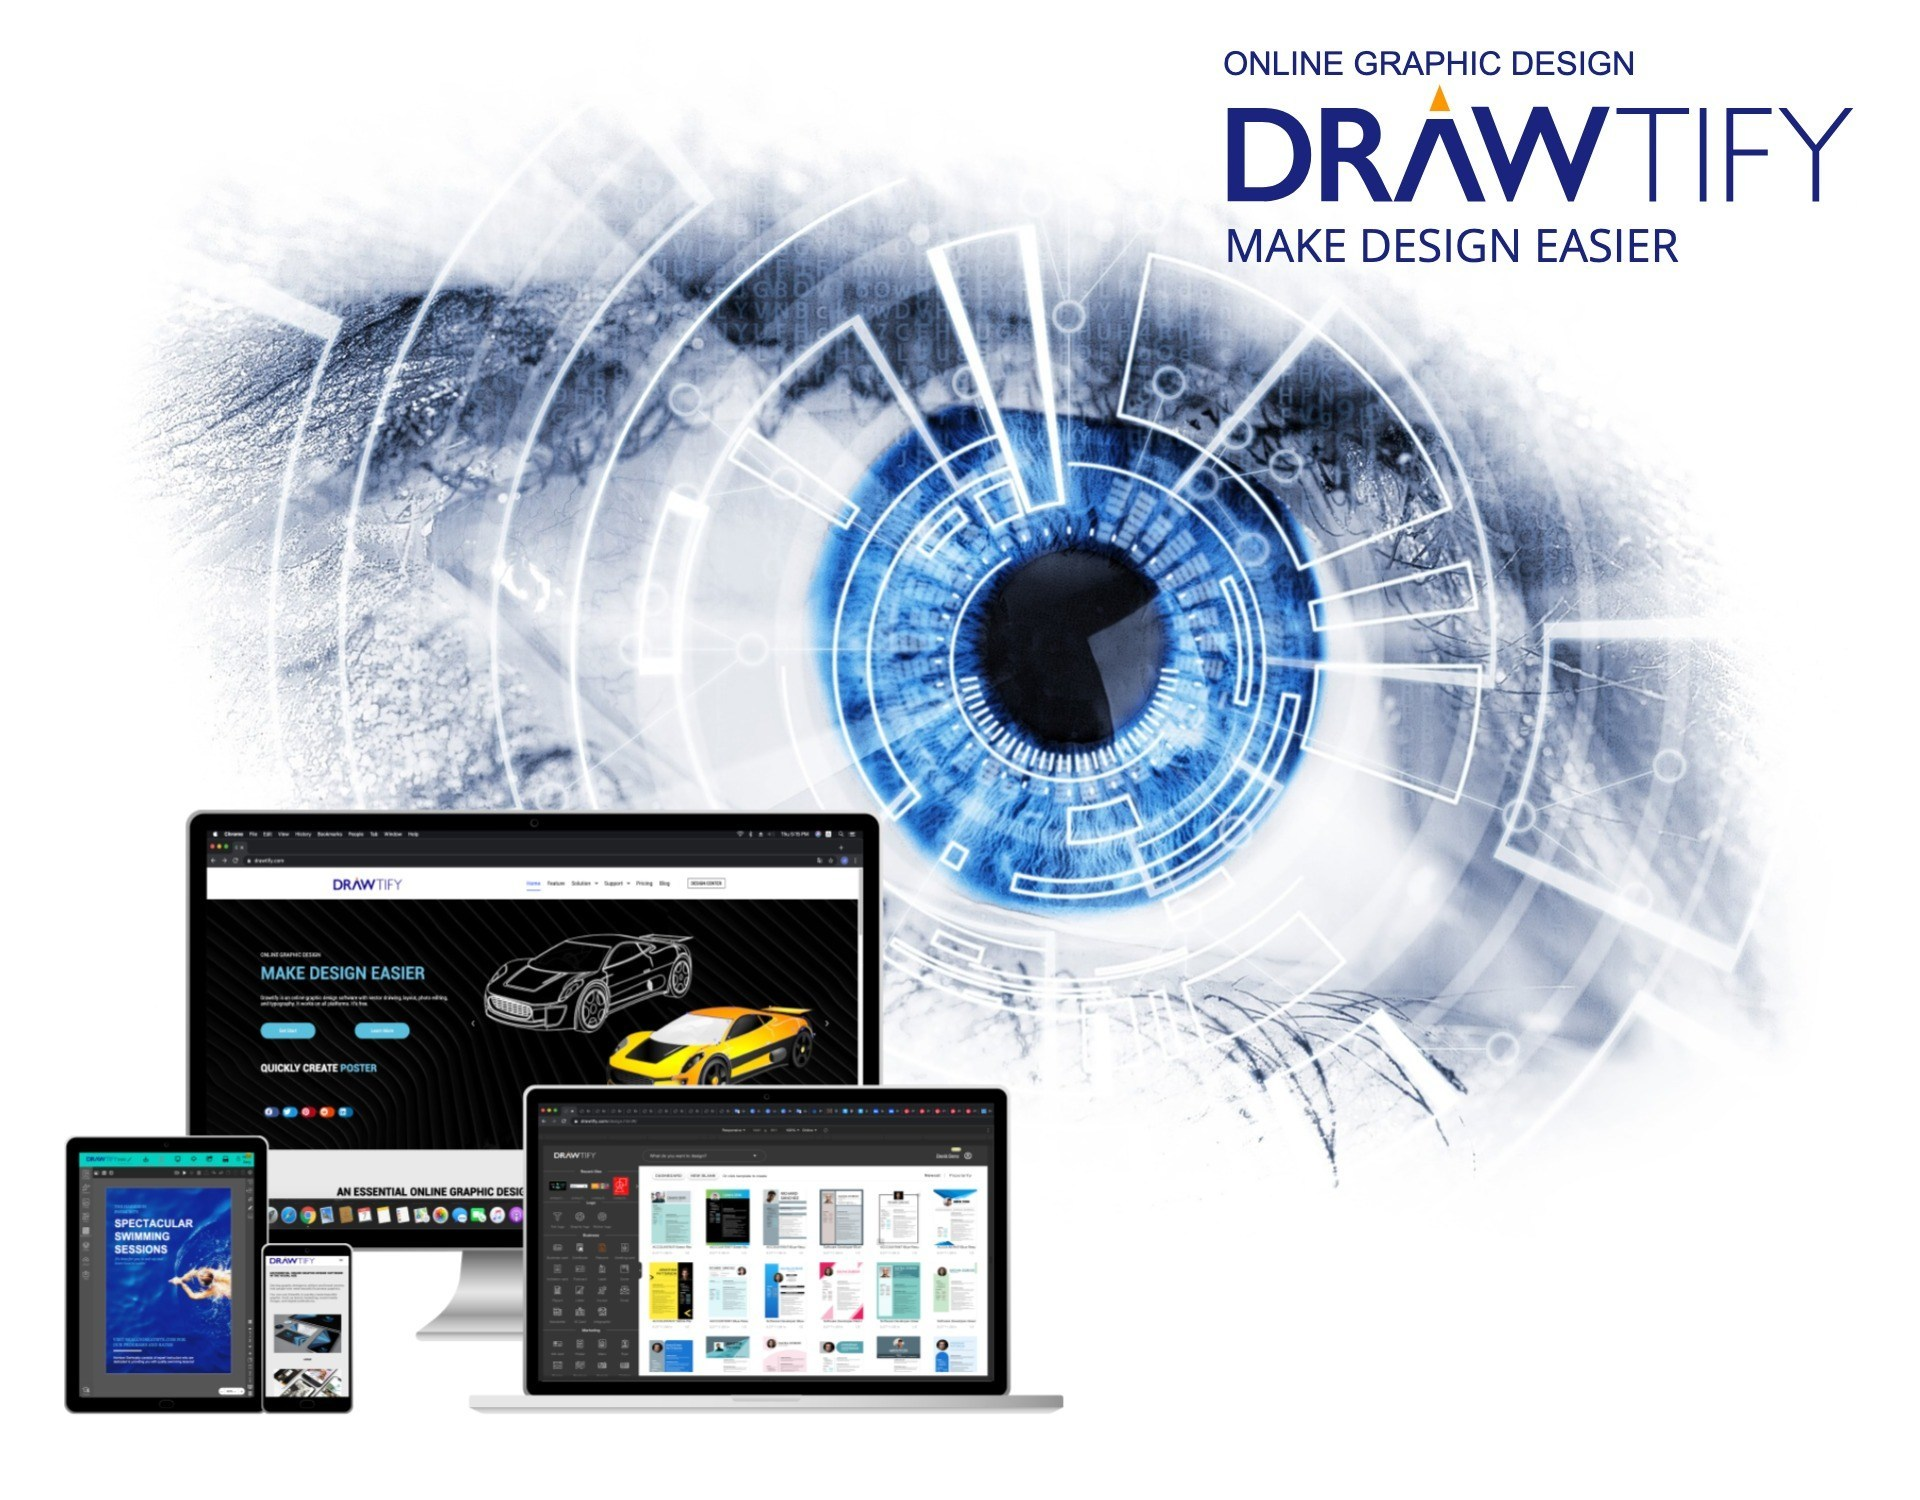 Online Graphic Design Software The Next Chapter